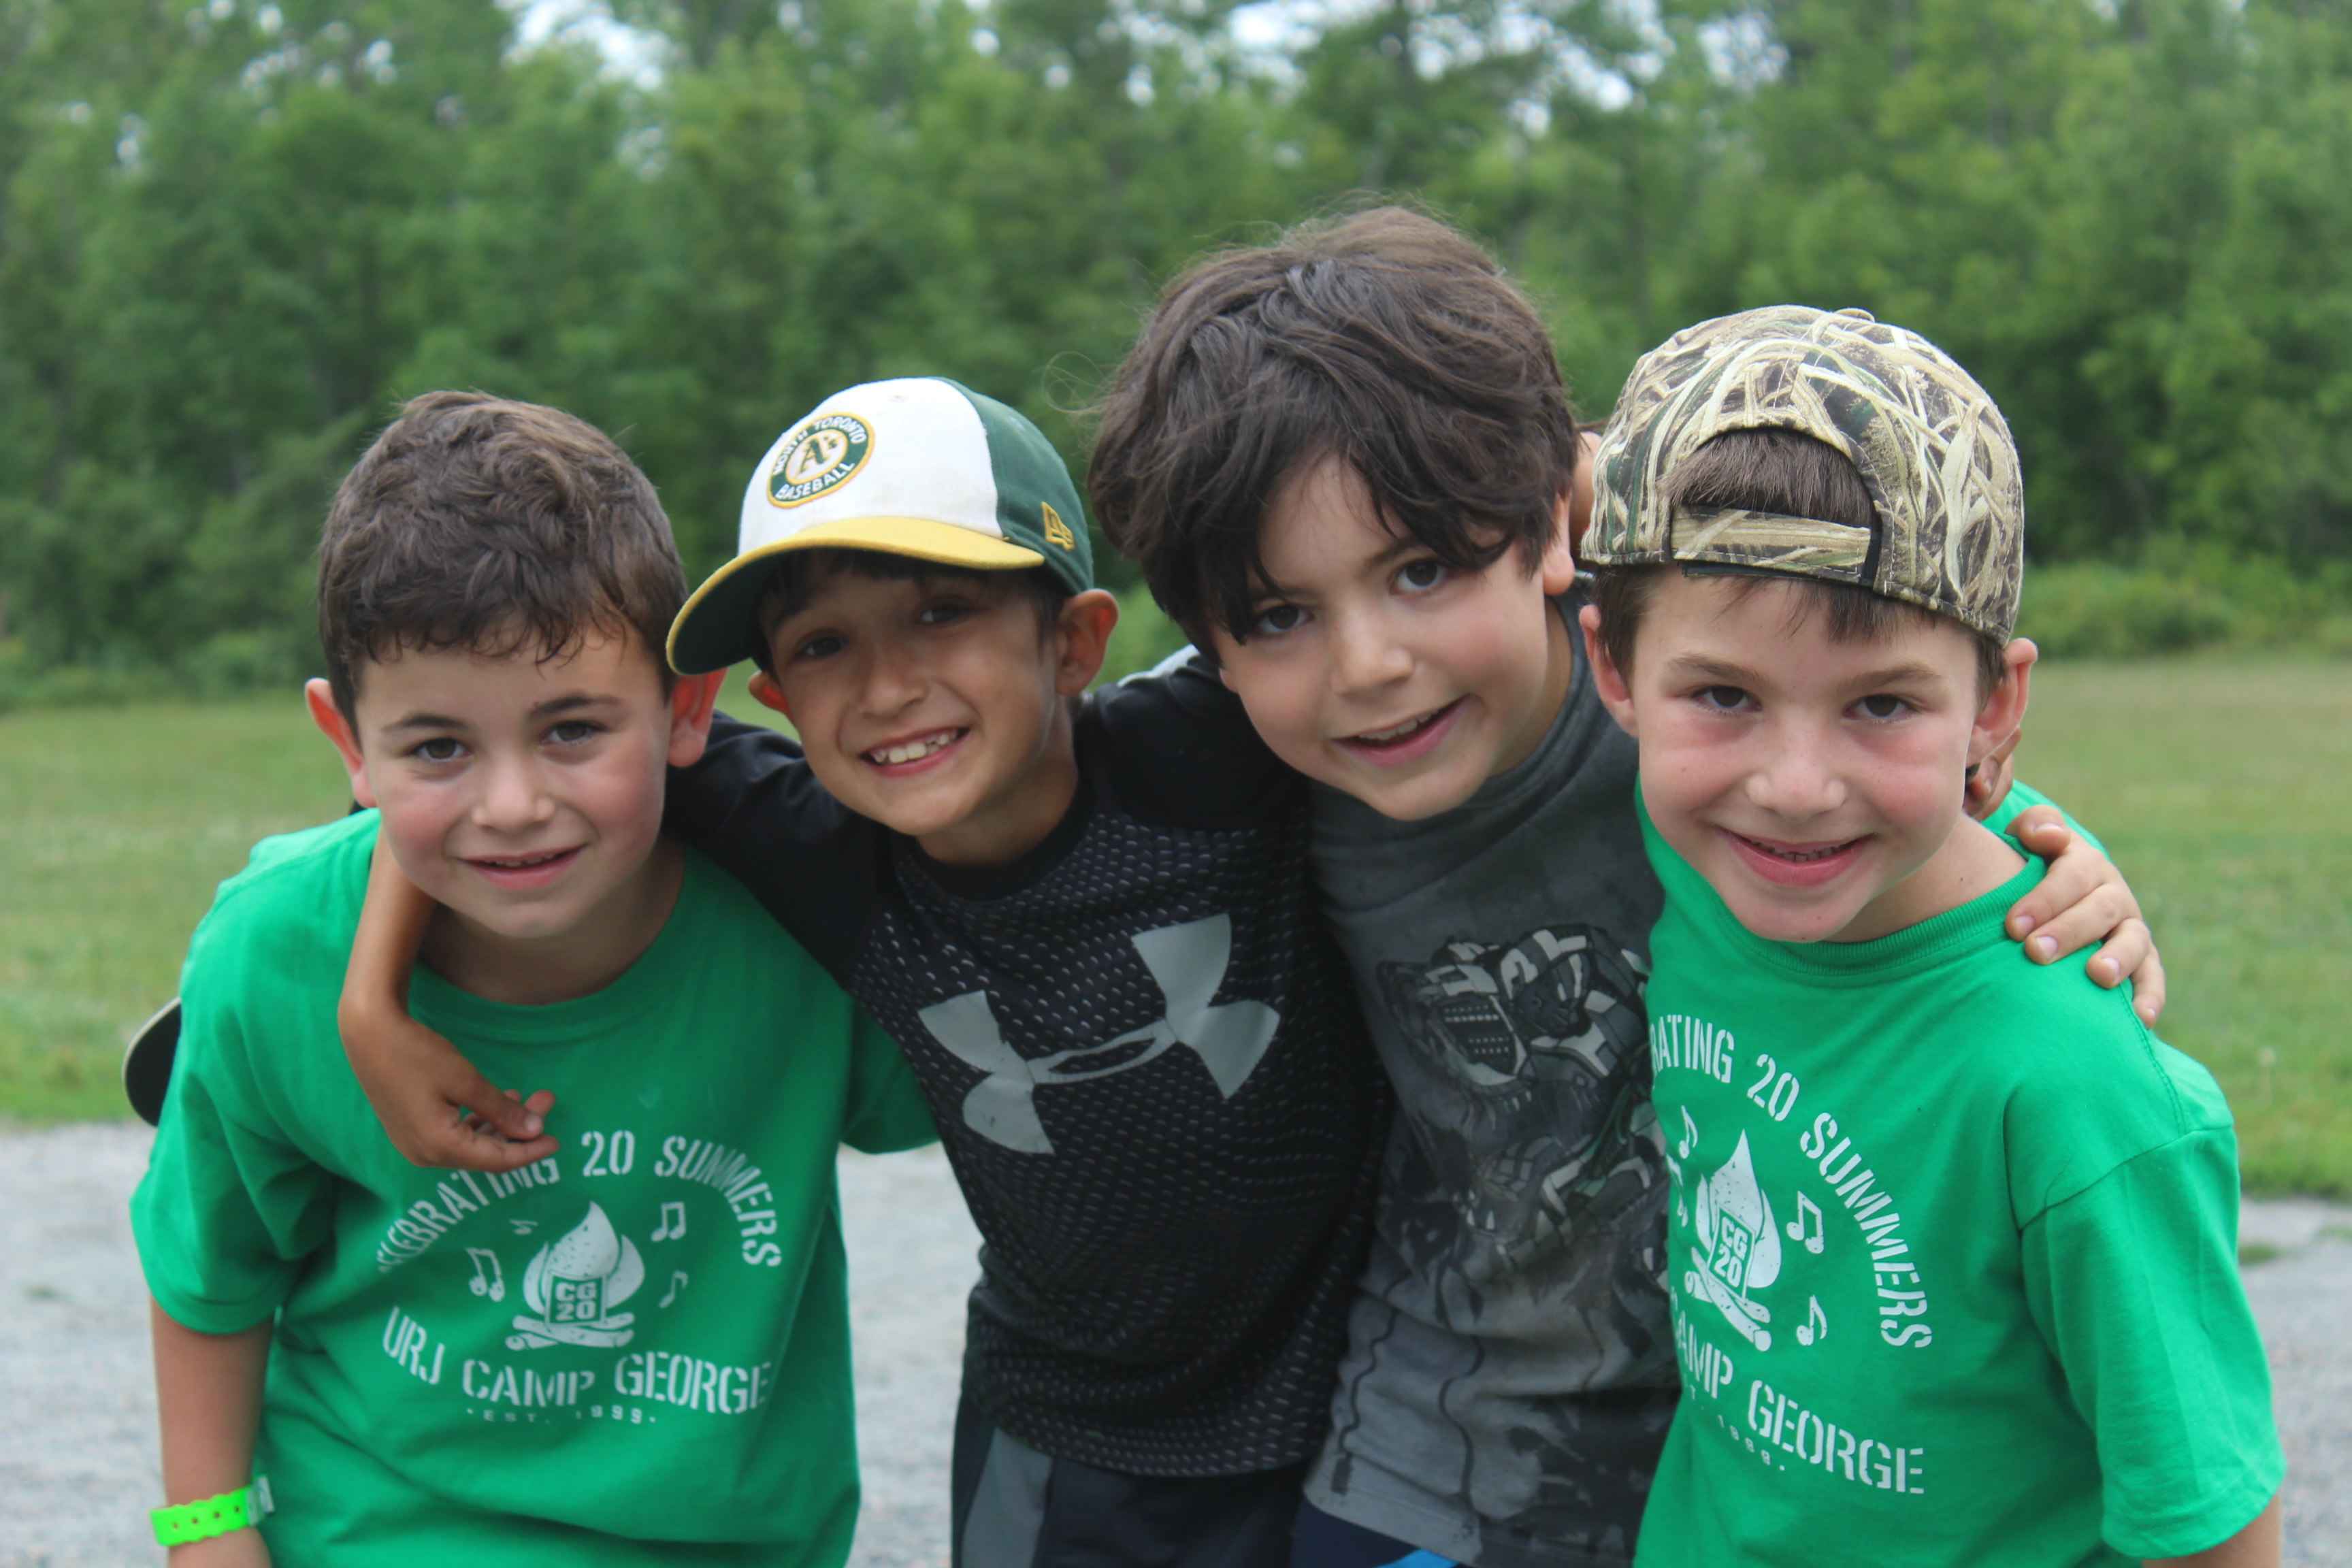 Summer Program - Jewish Culture | URJ Camp George